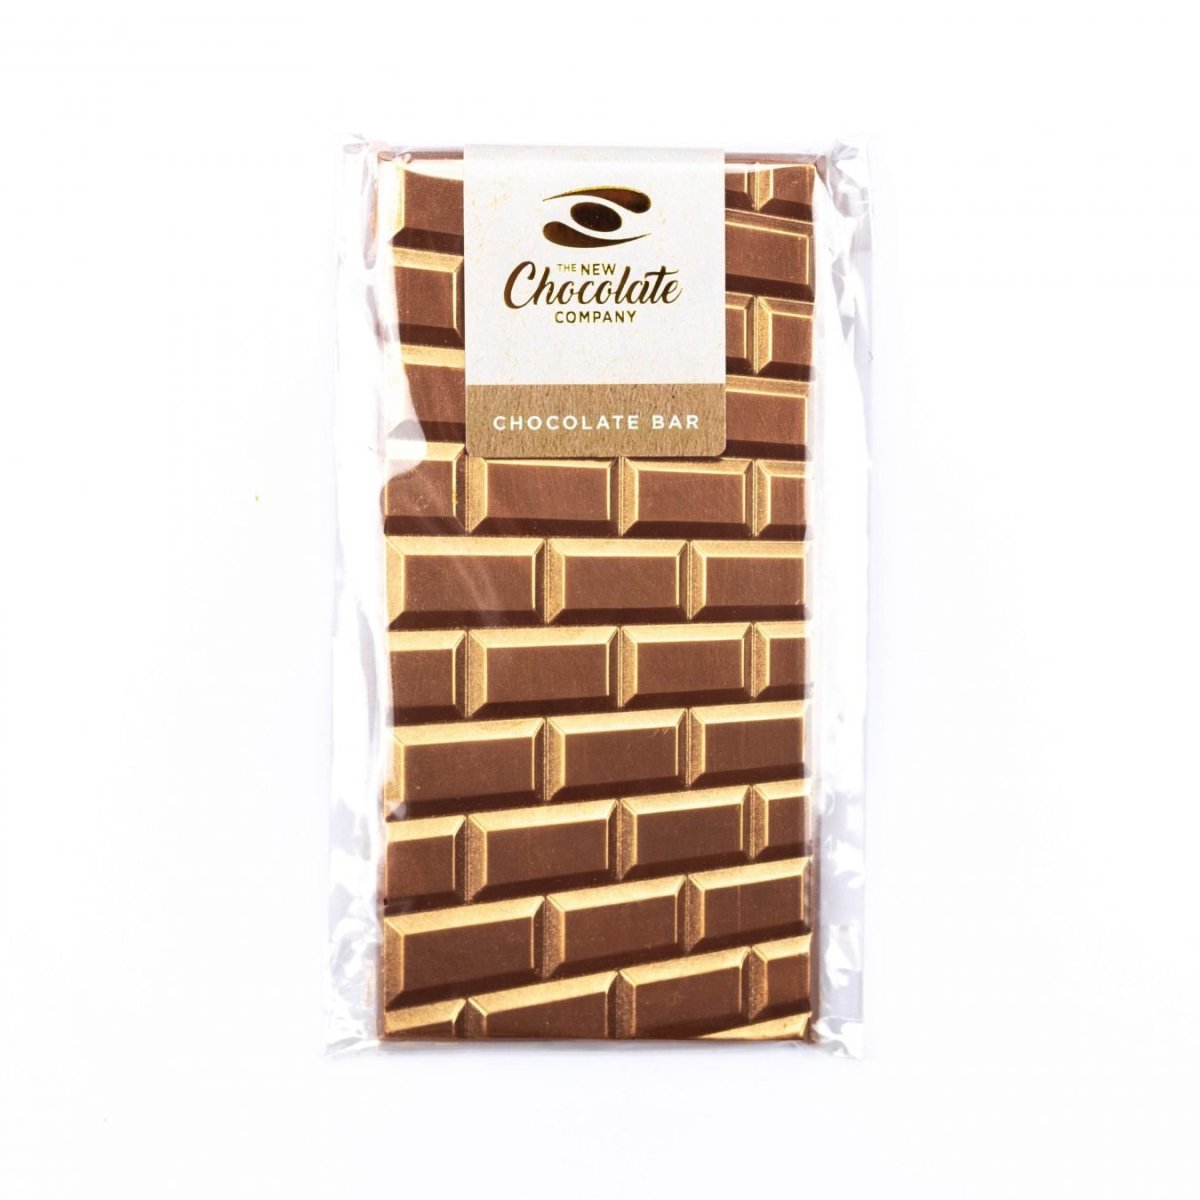 Chocolate bar moulded to look like wall bricks dusted in gold